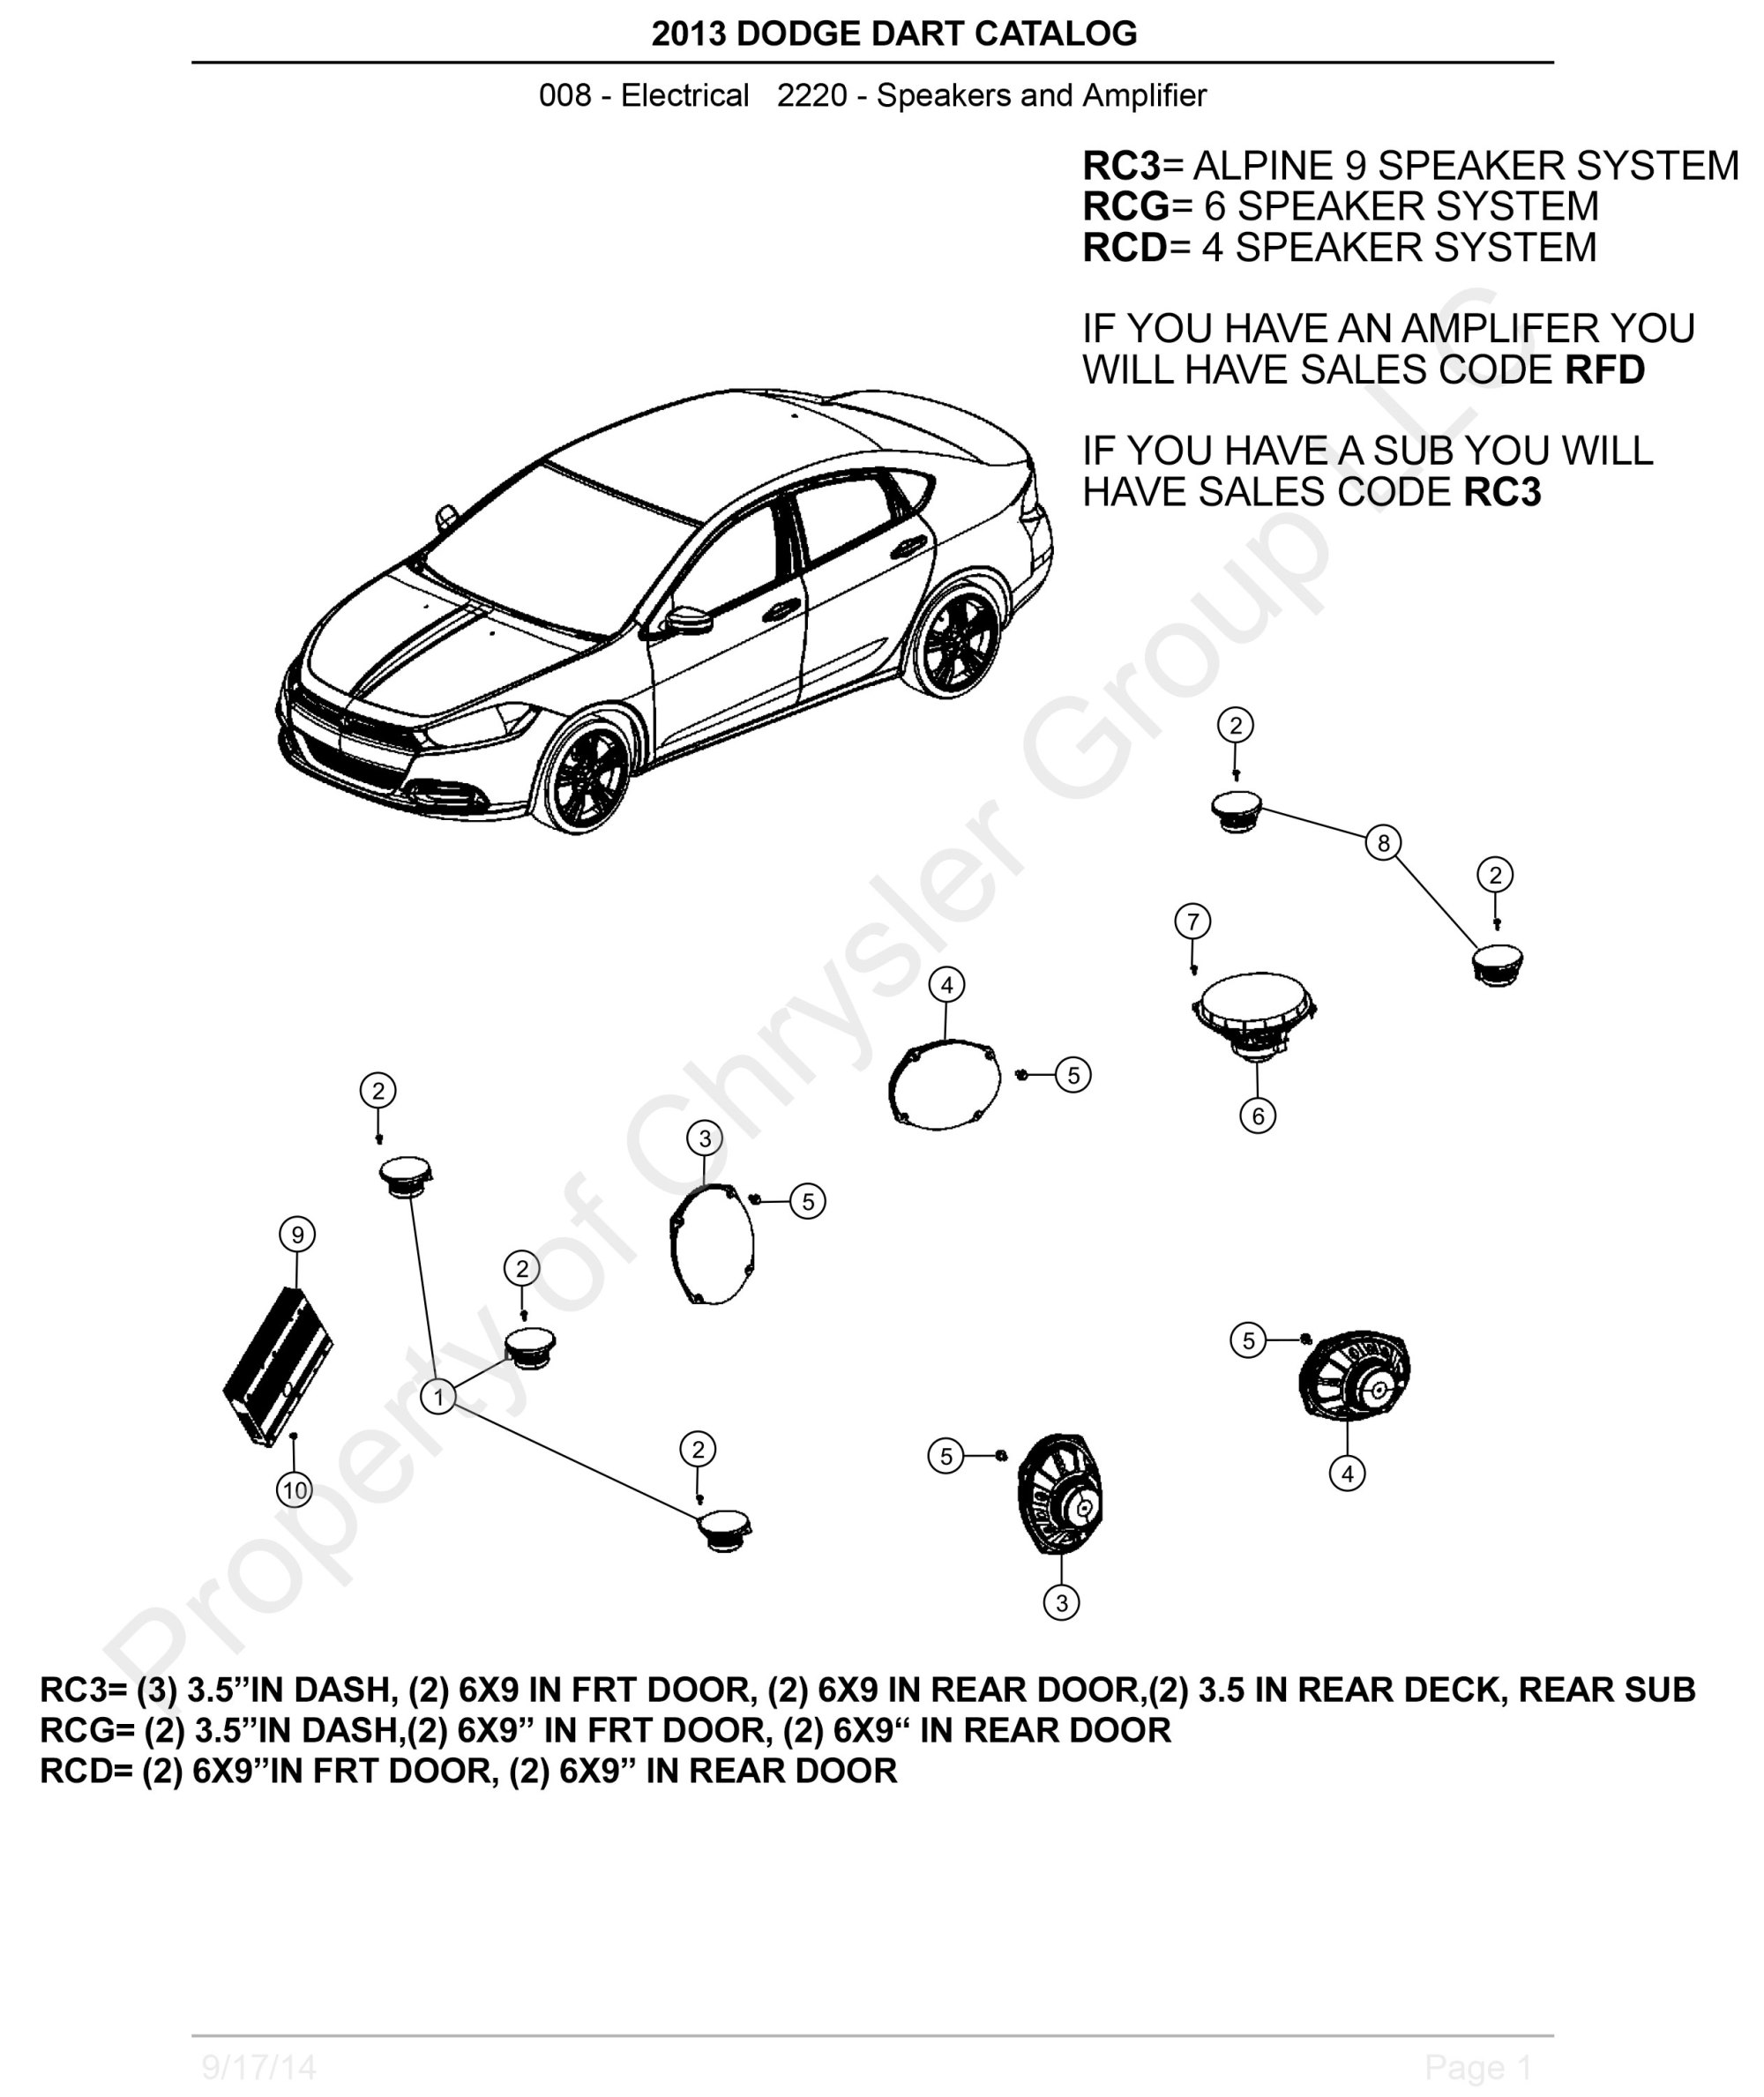 hight resolution of 2014 dodge dart stereo wiring diagram wiring diagram expert 2013 dodge dart radio wiring diagram 2013 dodge dart stereo wiring harness